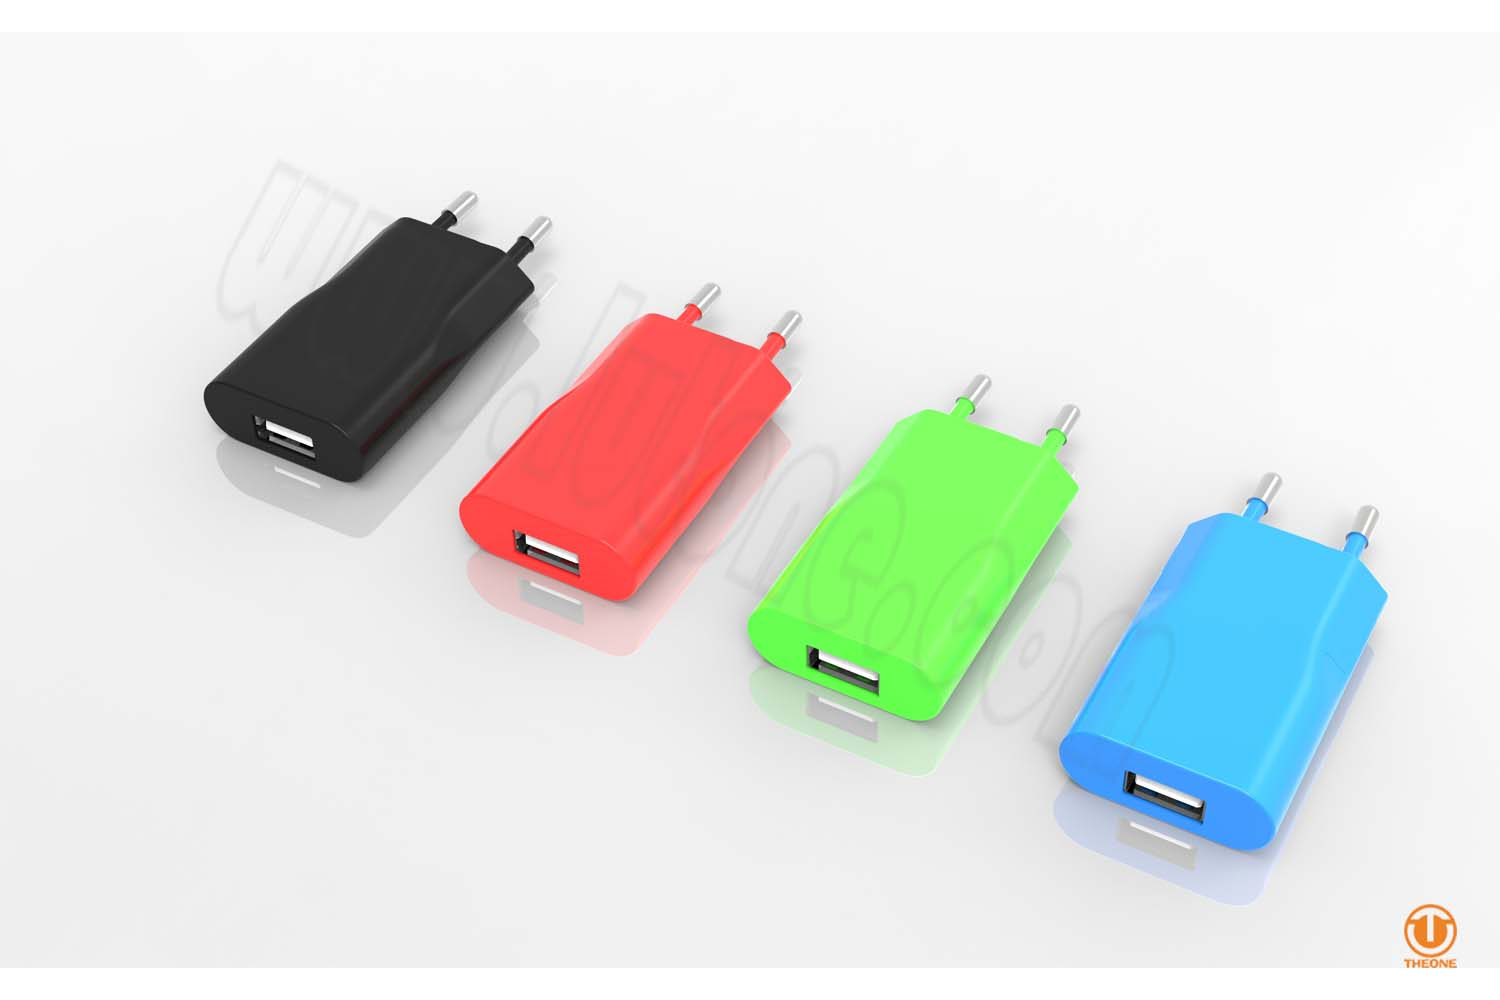 tc03b4-2 usb wall charger travel charger